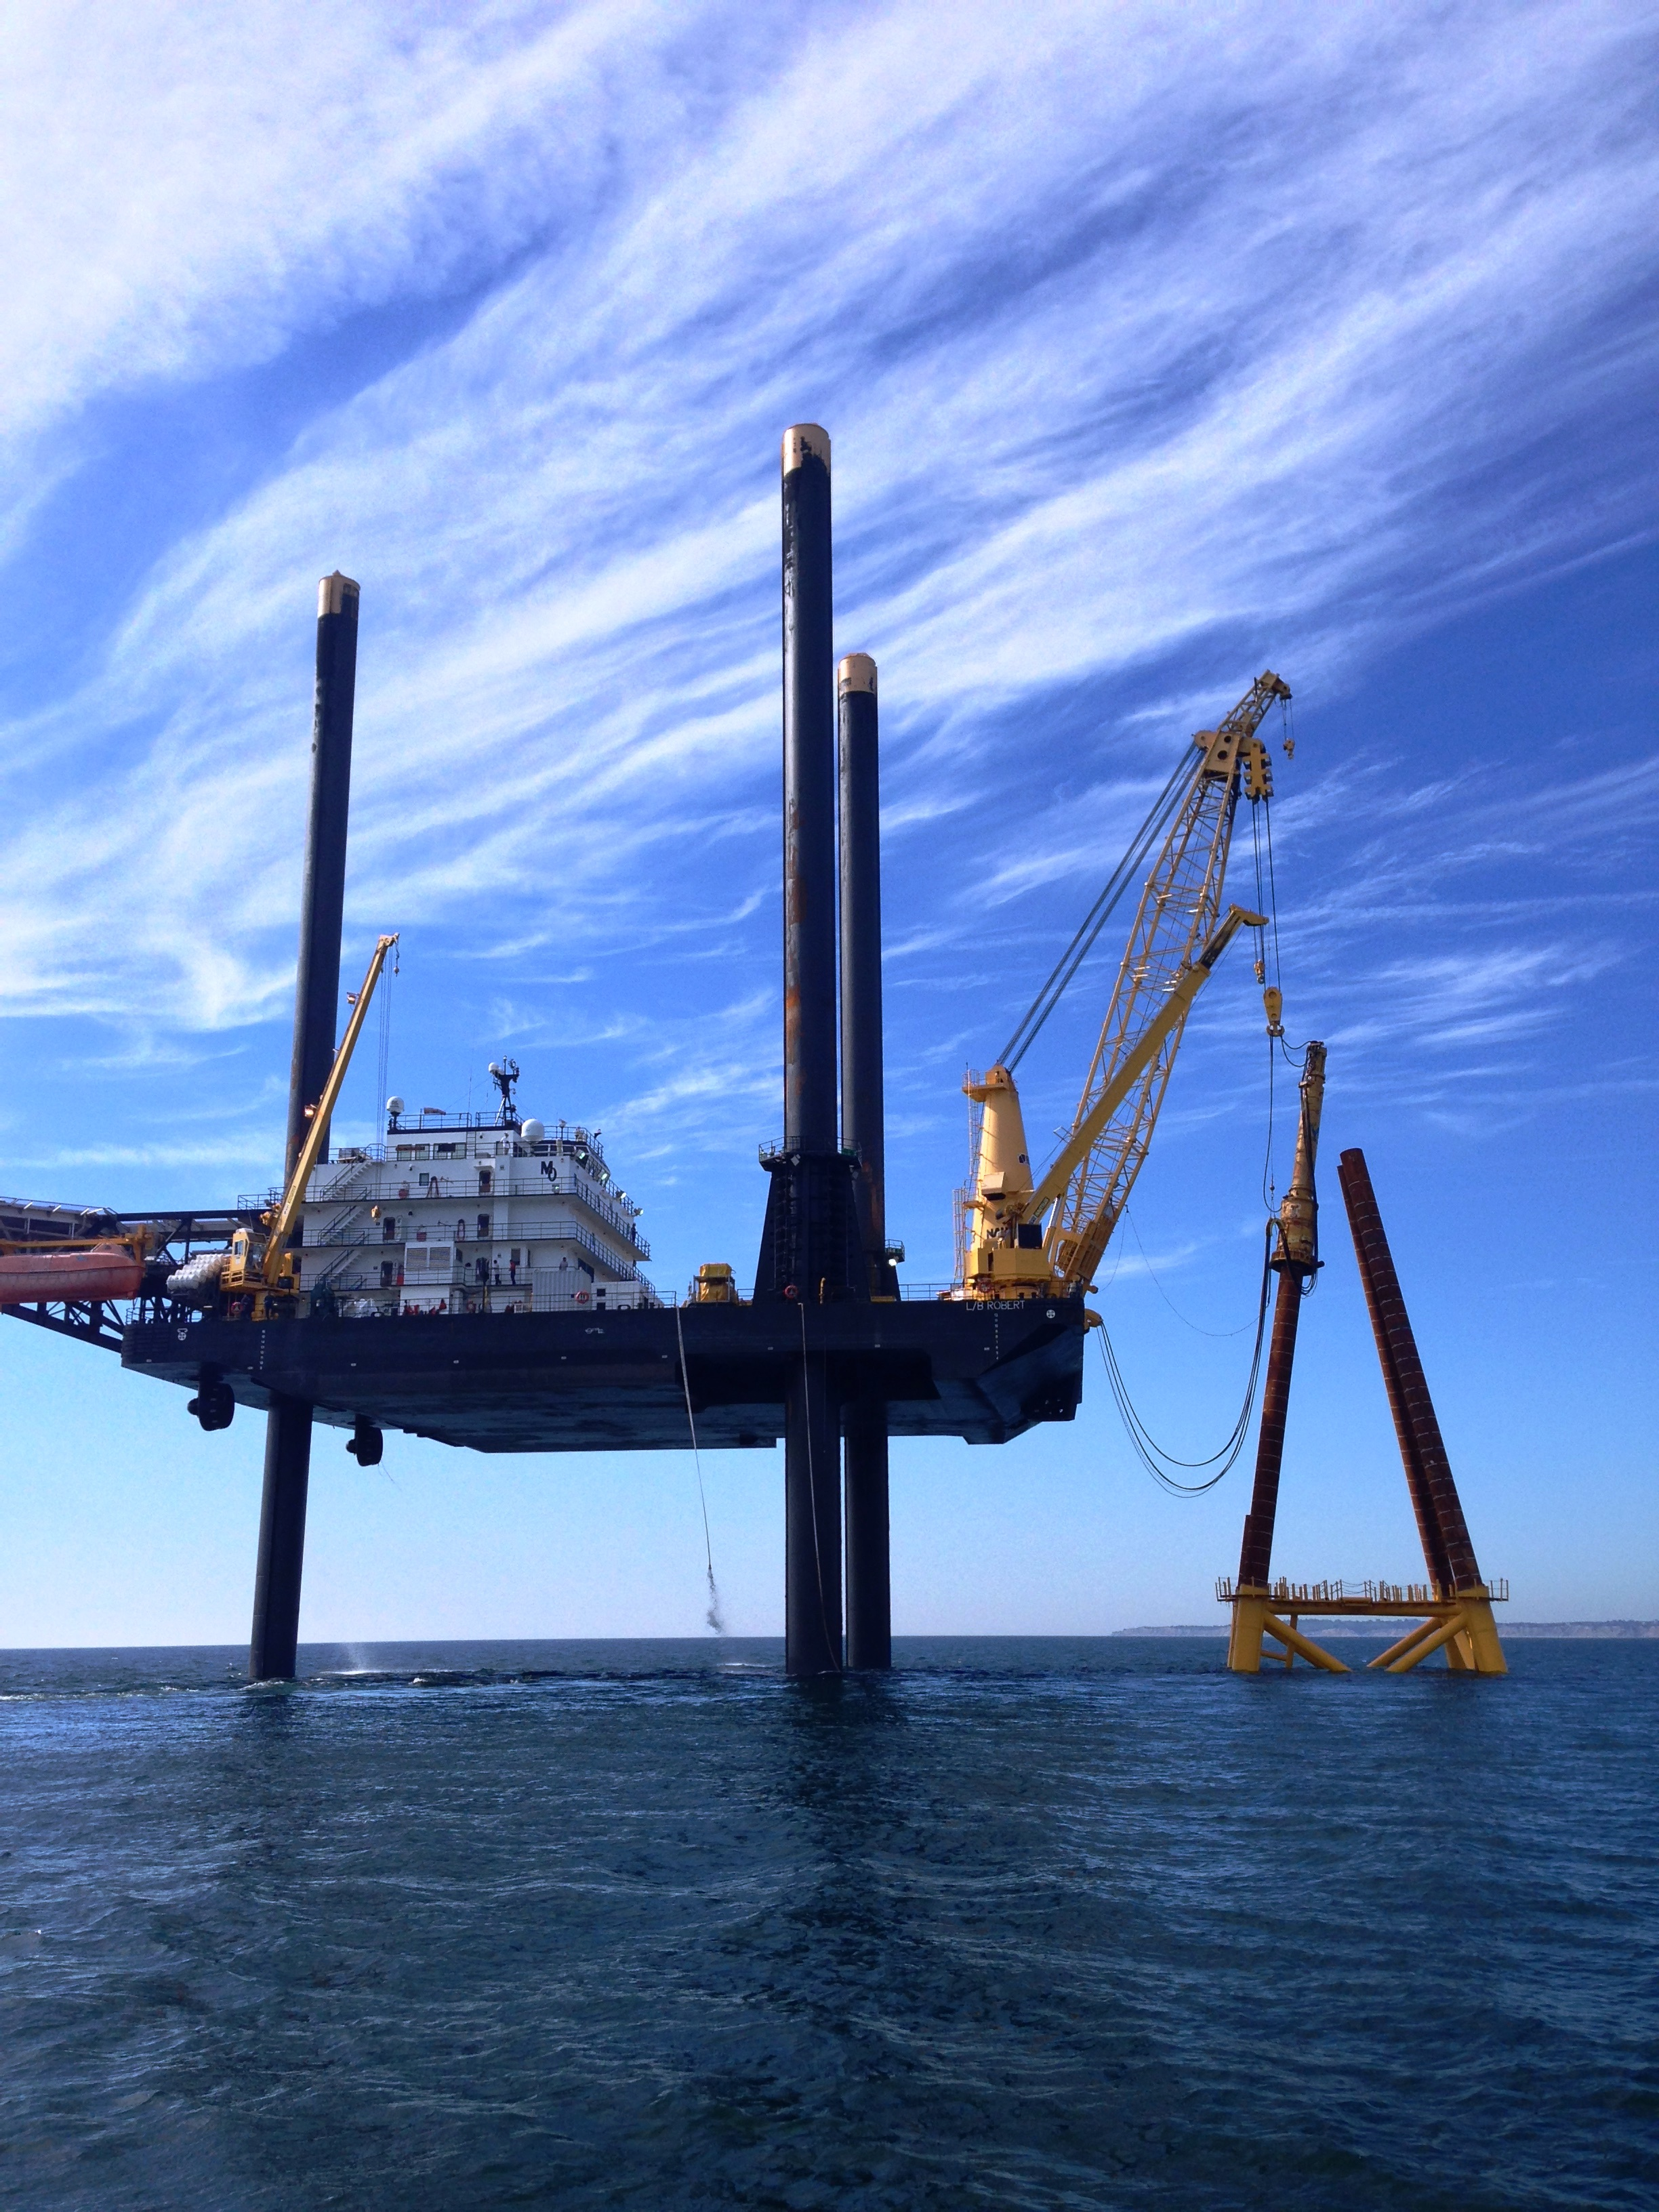 JASCO is measuring and monitoring underwater noise from construction of the first North American offshore wind farm.